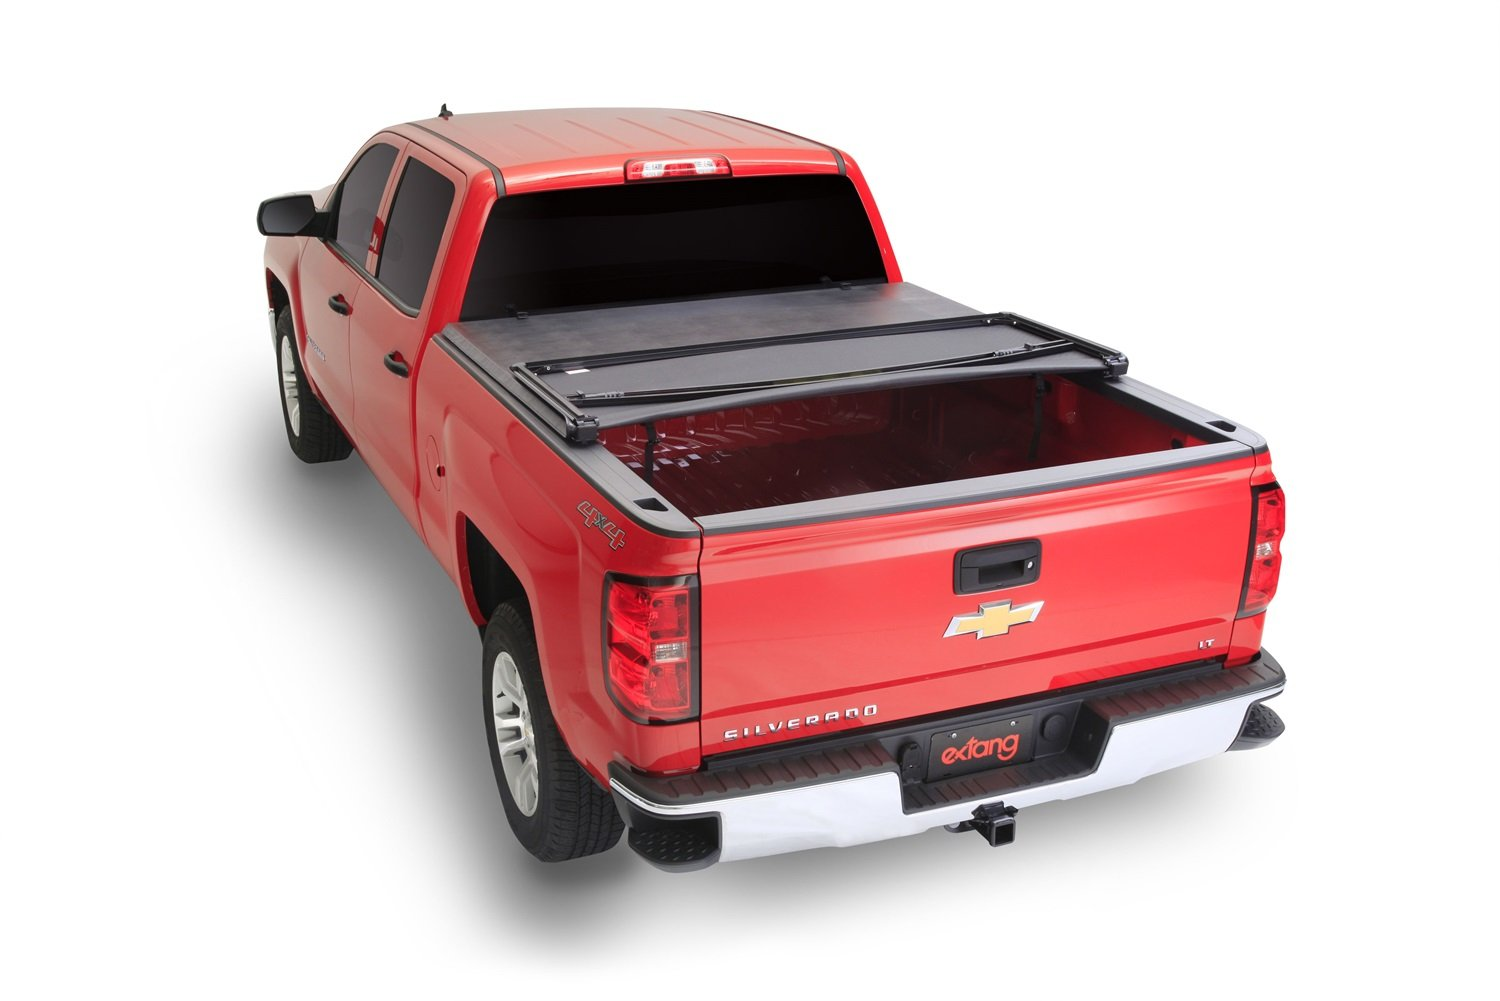 Extang 44645 Original Trifecta Trifold Truck Bed Cover 1961 Chevy C10 Short Fits Gmc Silverado Sierra 5 Ft 8 In 07 13 Without Track System Automotive